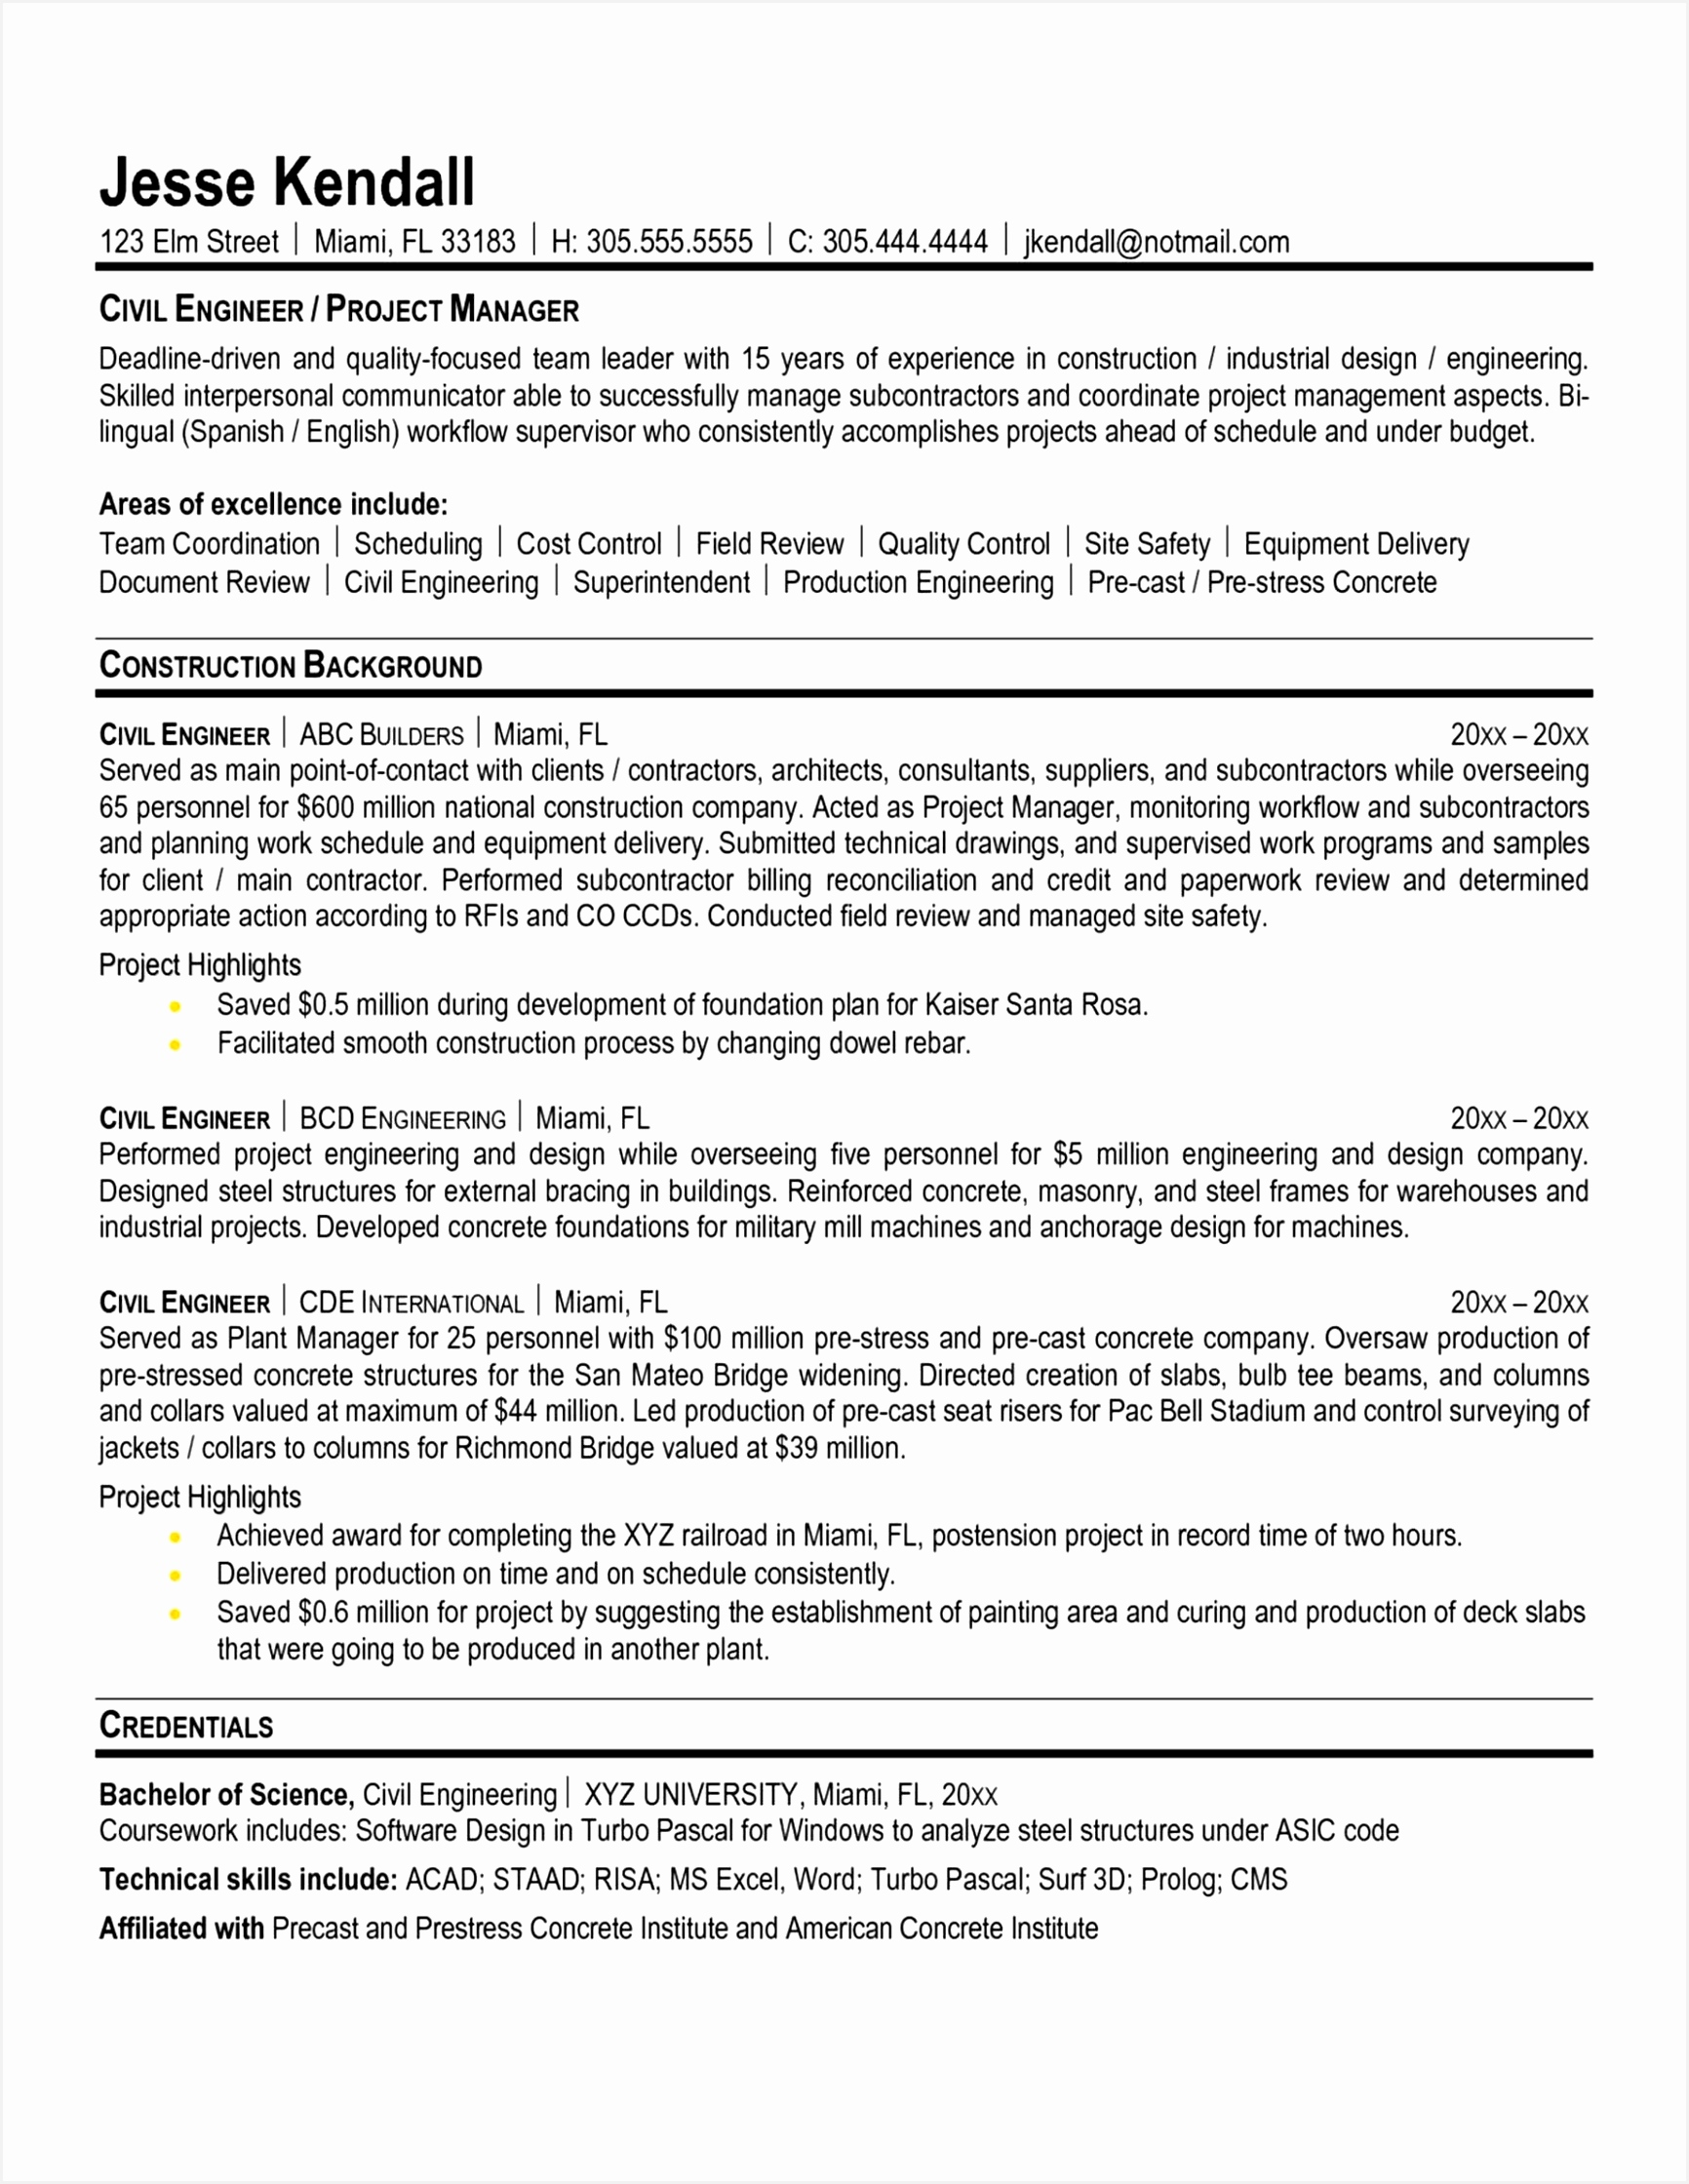 Contract Stress Engineer Sample Resume Nysfz Unique Quality assurance Director Resume — Resumes Project Of Contract Stress Engineer Sample Resume Cagkn Unique 42 Unique Resume format for Mechanical Engineering Students Pdf